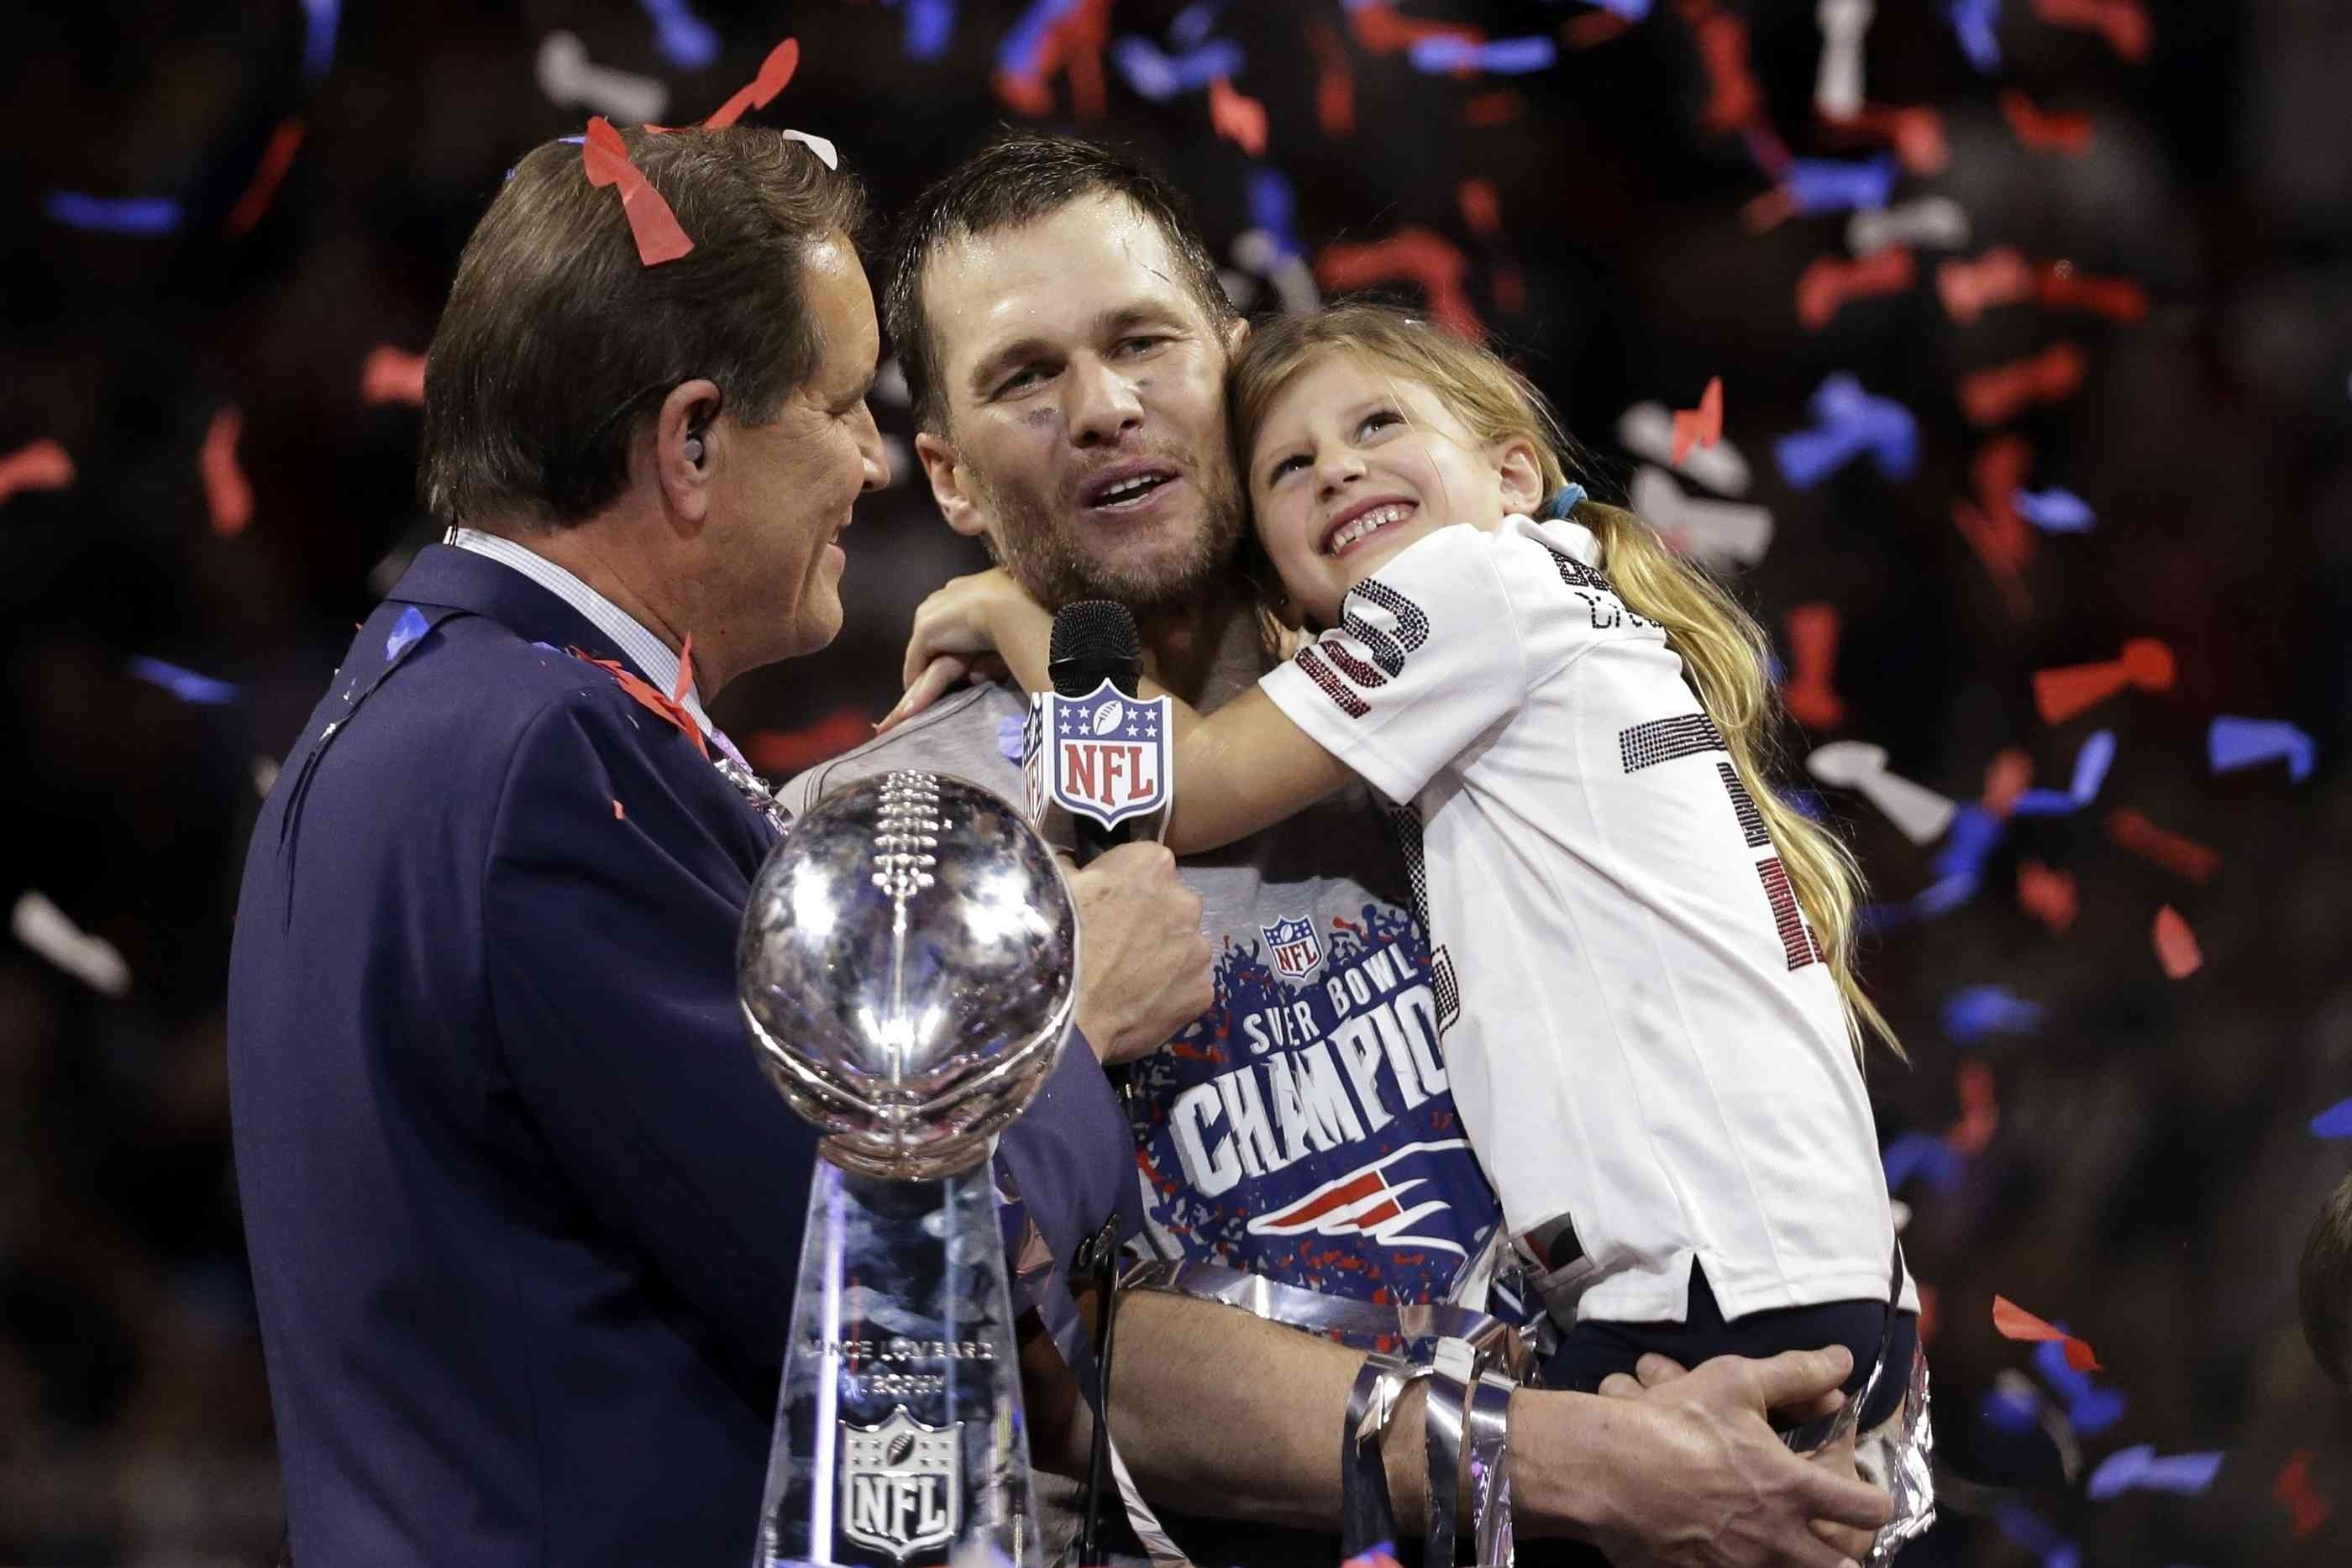 Super Bowl 2019: Tom Brady Feiert 6. Titel Mit Seiner inside Super Bowl 2019 Tom Brady